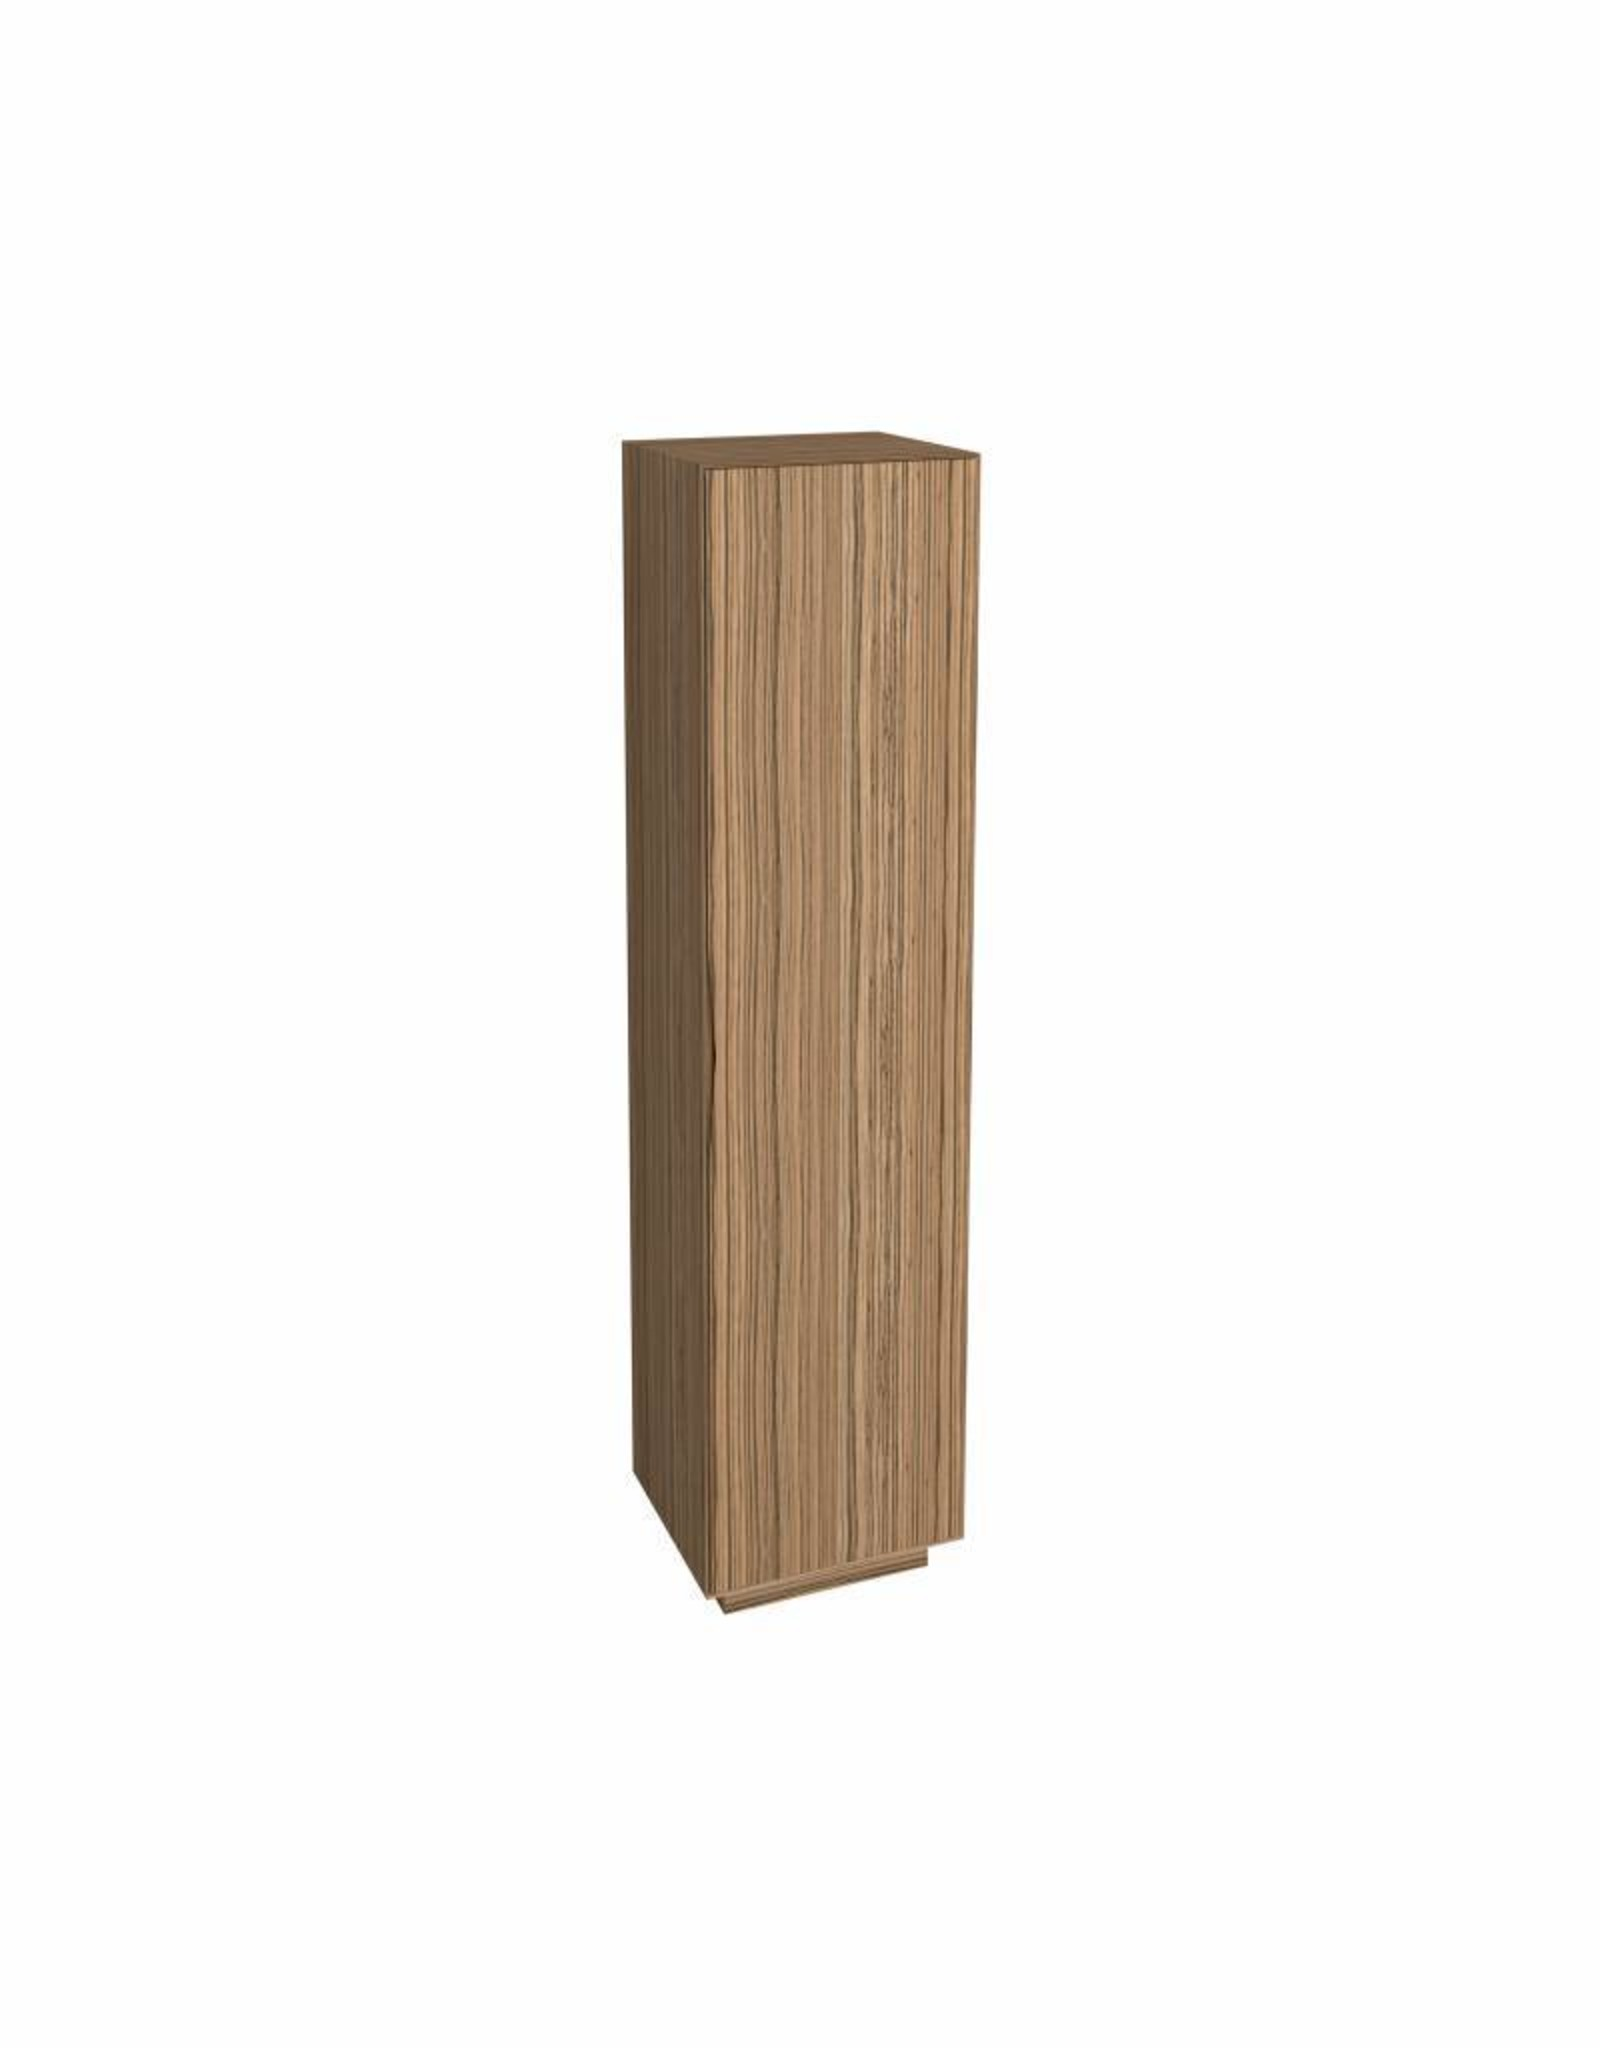 First column cabinet - outlet